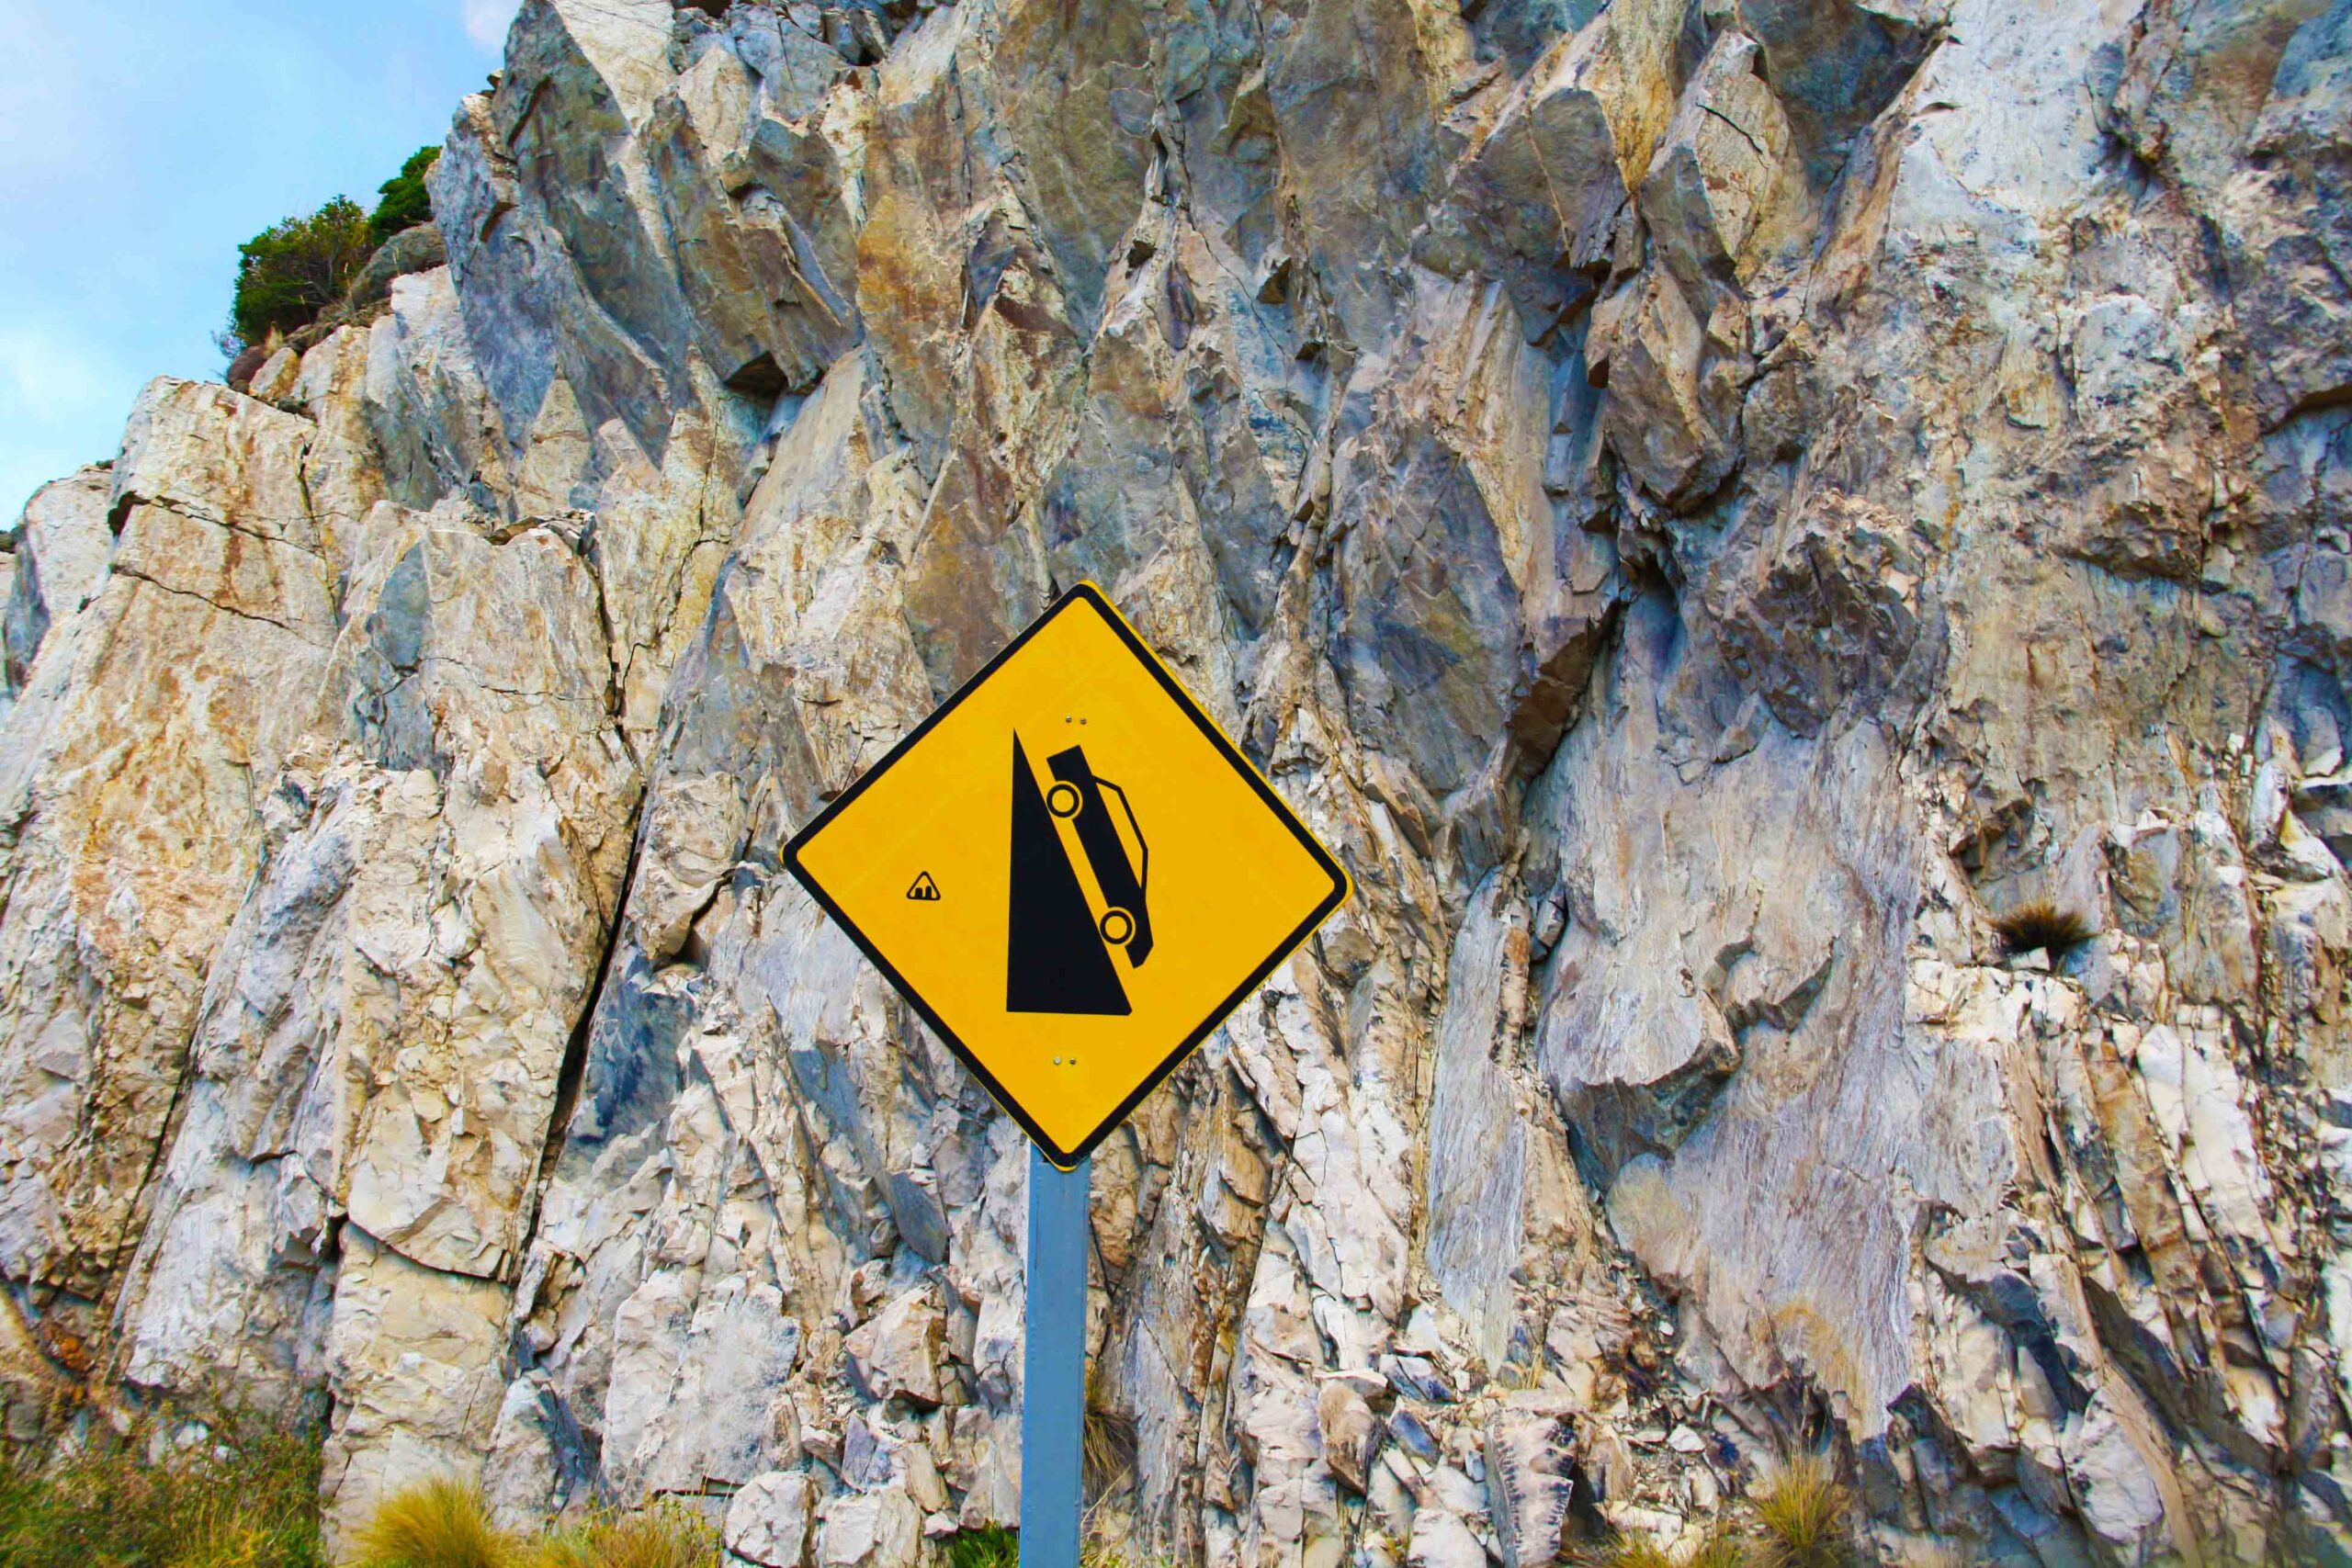 Steep decline road sign on the Carretera Austral Chile